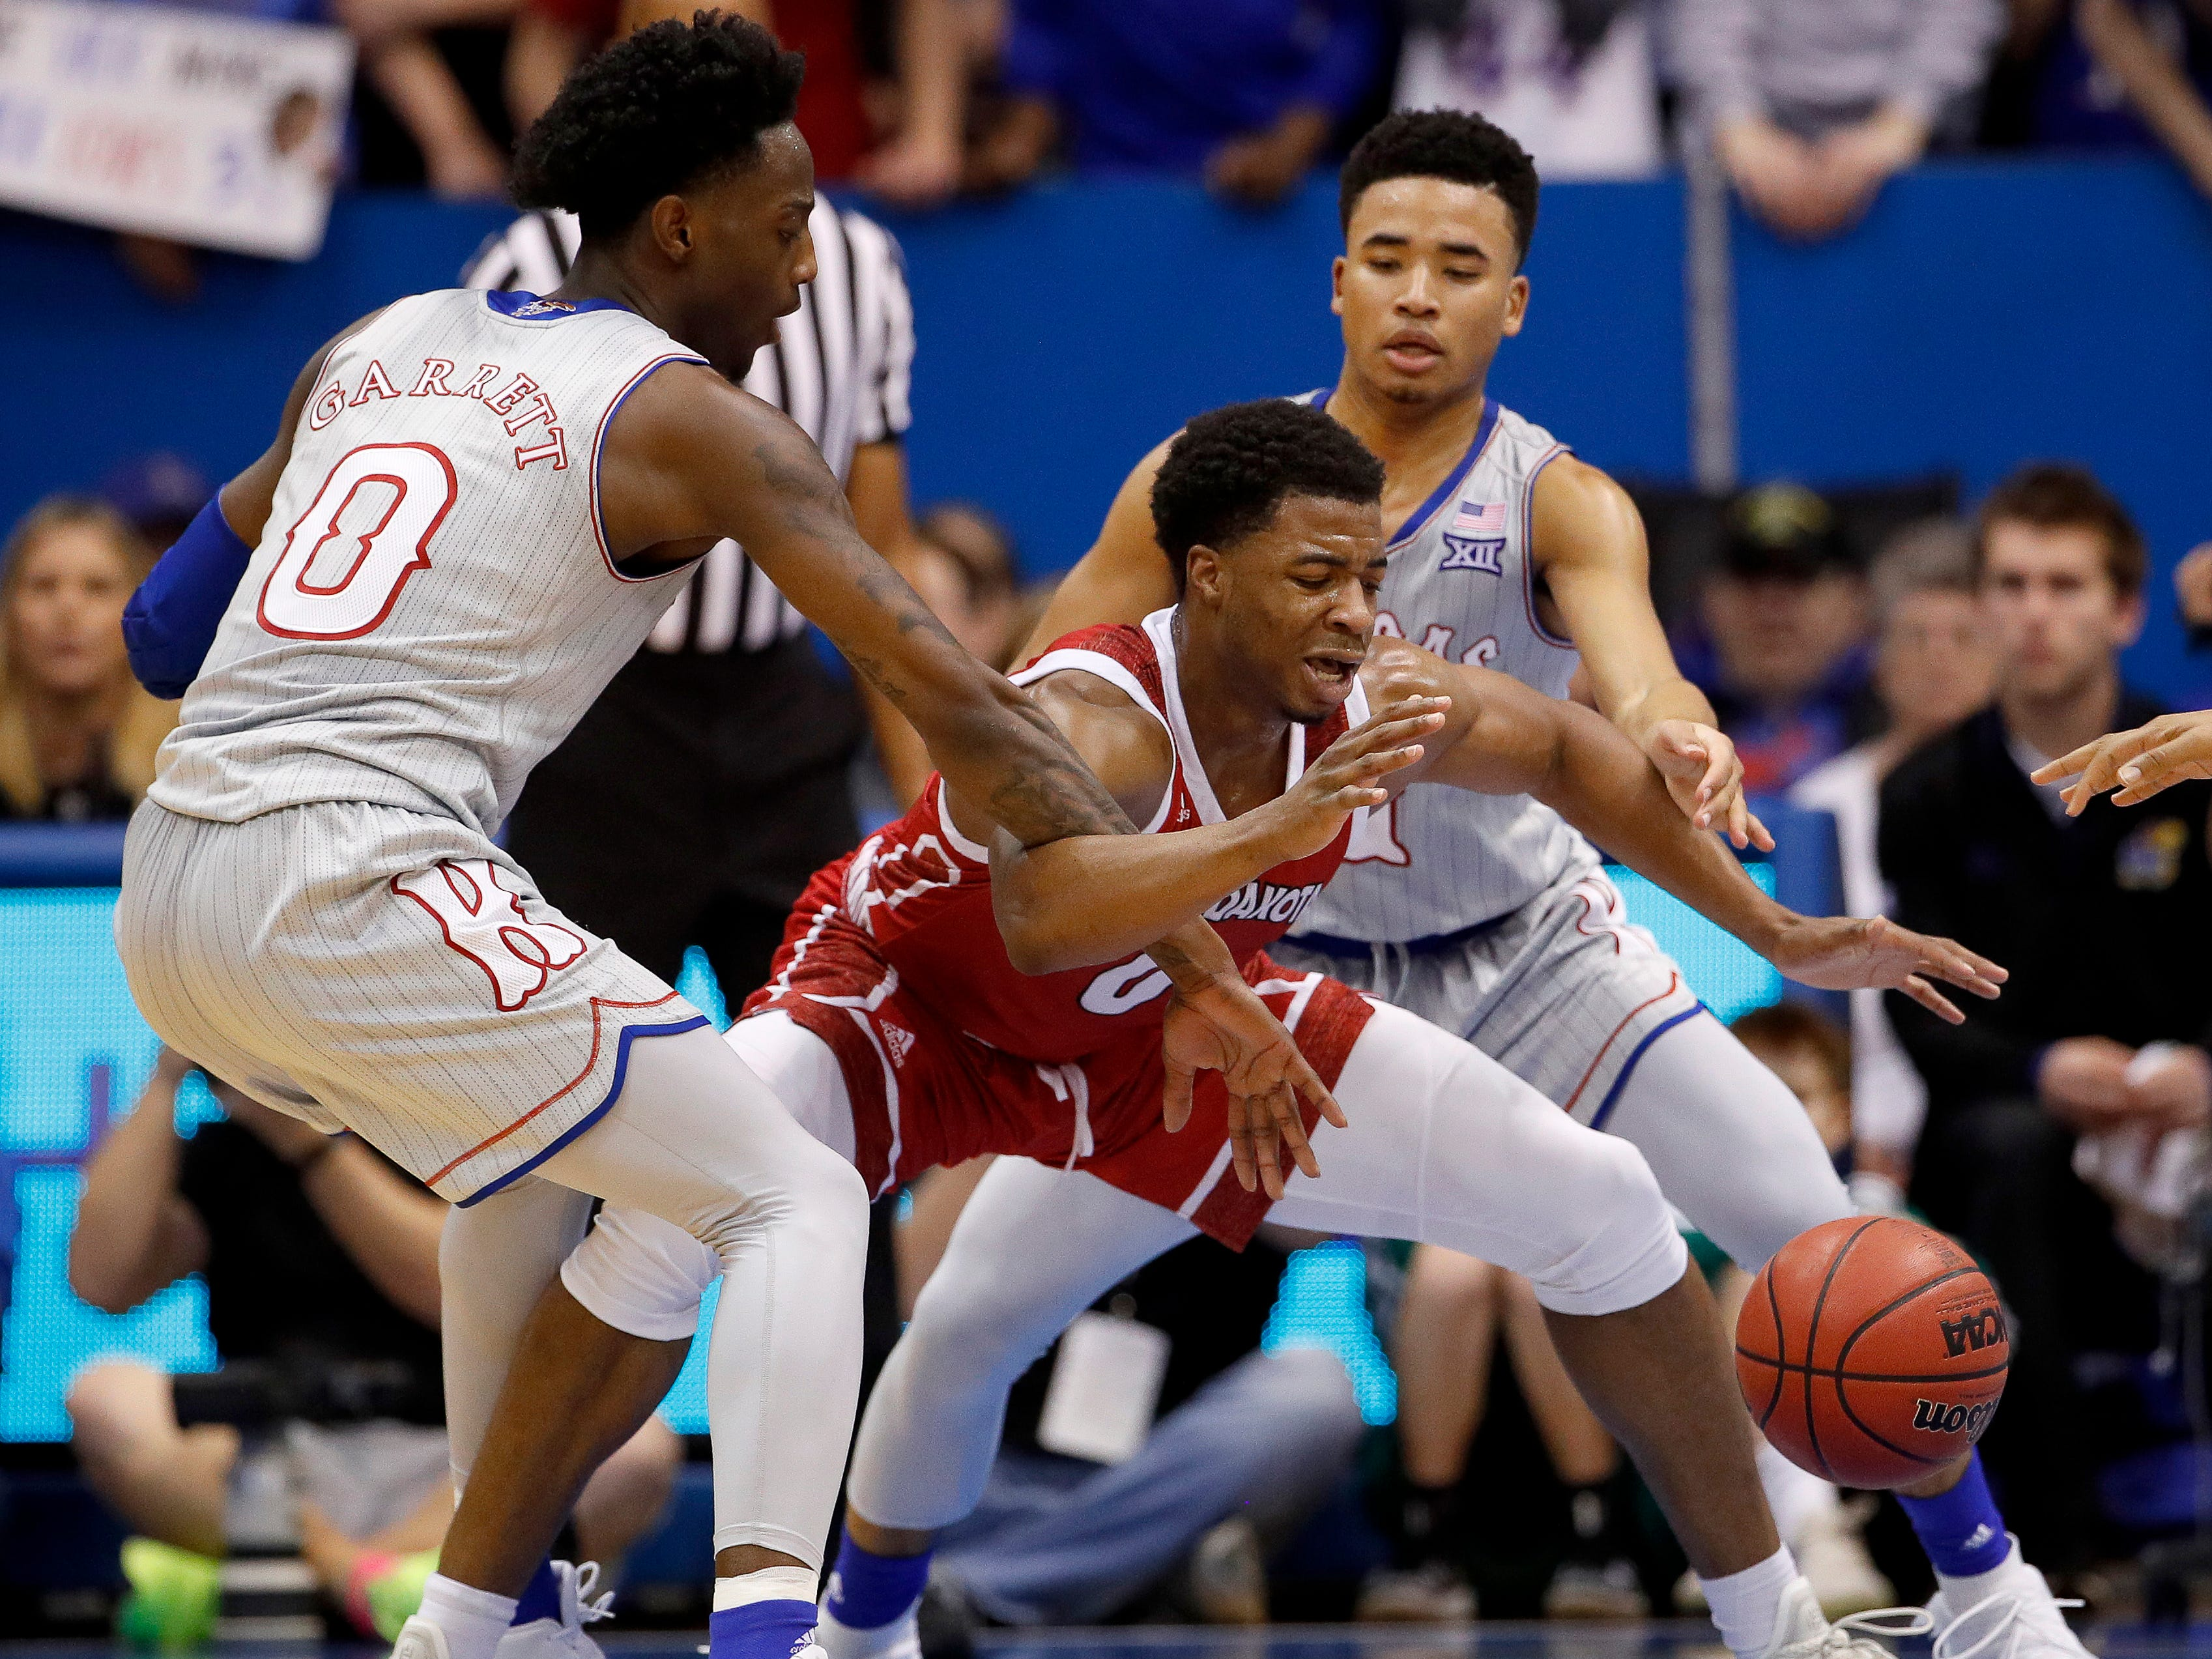 Kansas' Marcus Garrett (0) and Devon Dotson try to strip the ball from South Dakota's Stanley Umude, center, during the first half of an NCAA college basketball game Tuesday, Dec. 18, 2018, in Lawrence, Kan. (AP Photo/Charlie Riedel)